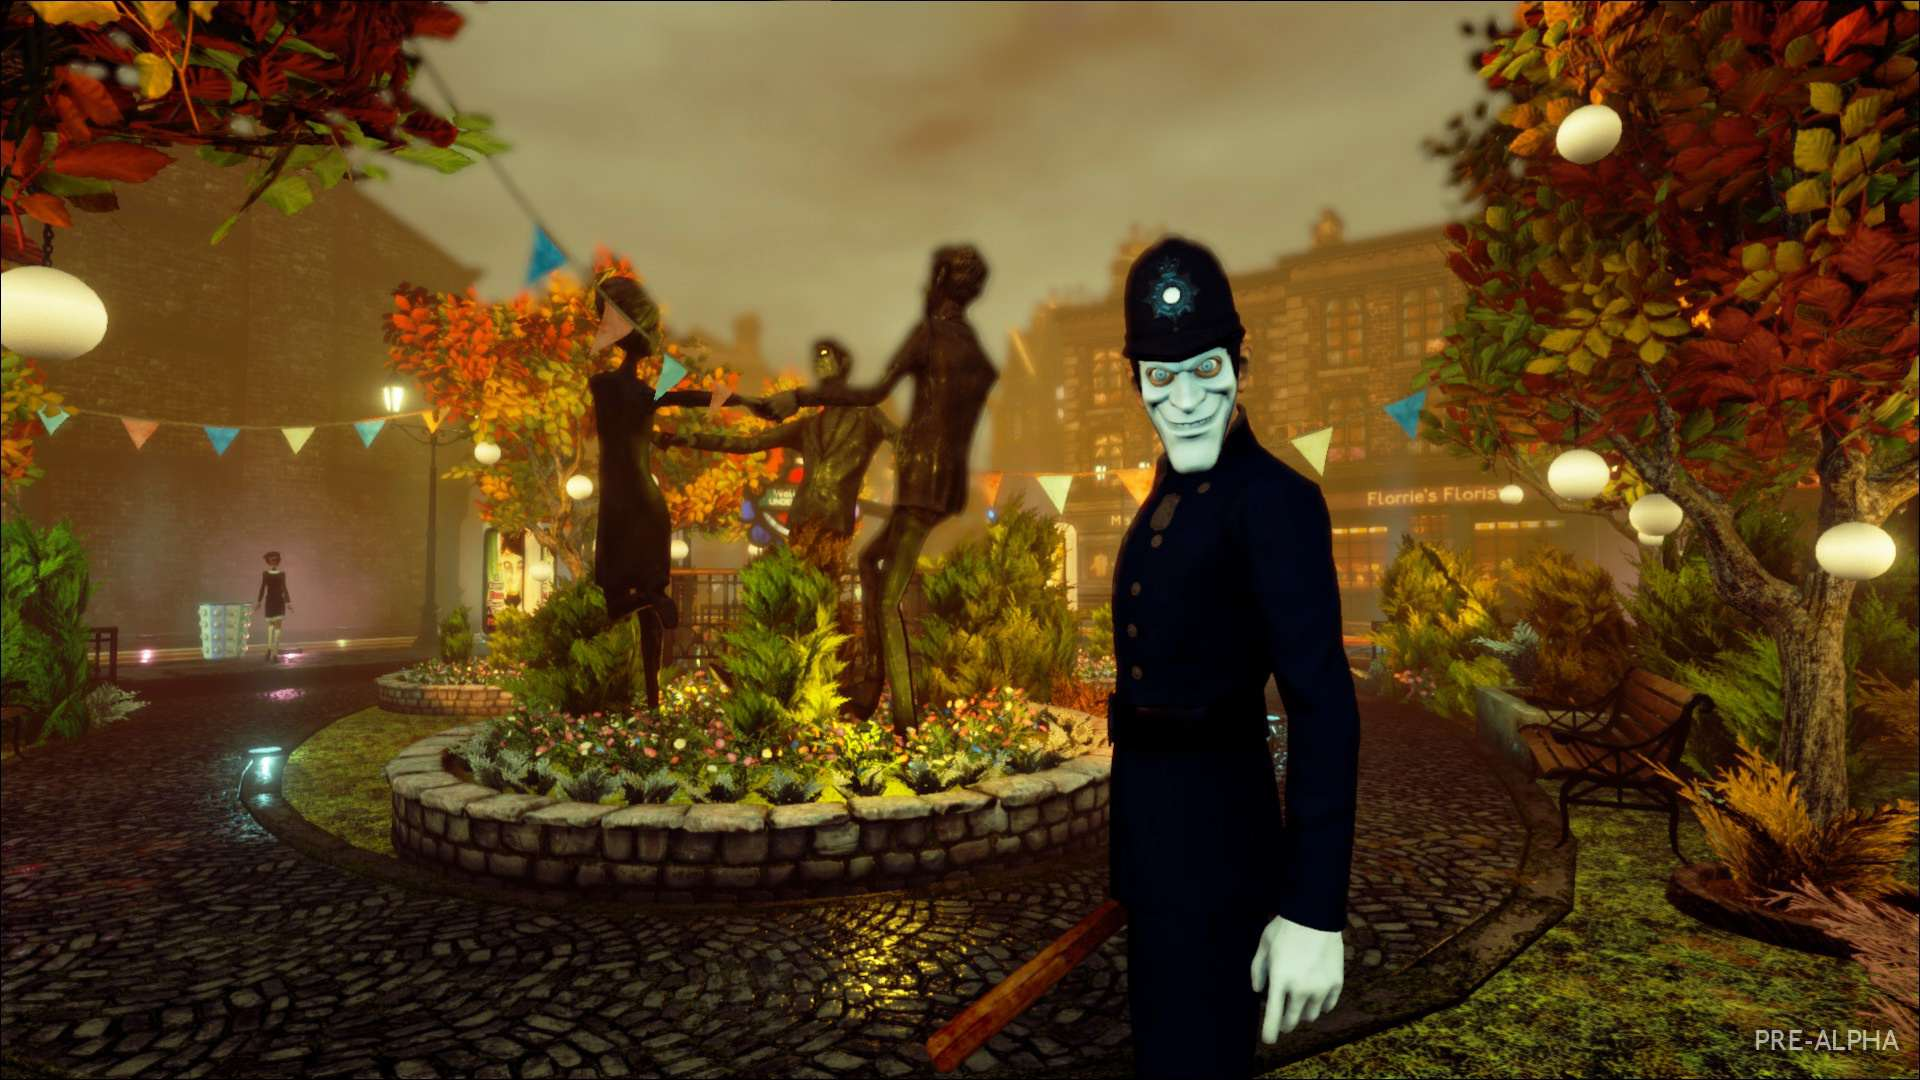 We Happy Few E3 Trailer Is Wonderfully Chilling WeHappyFew 2 ExitBobby PreAlpha